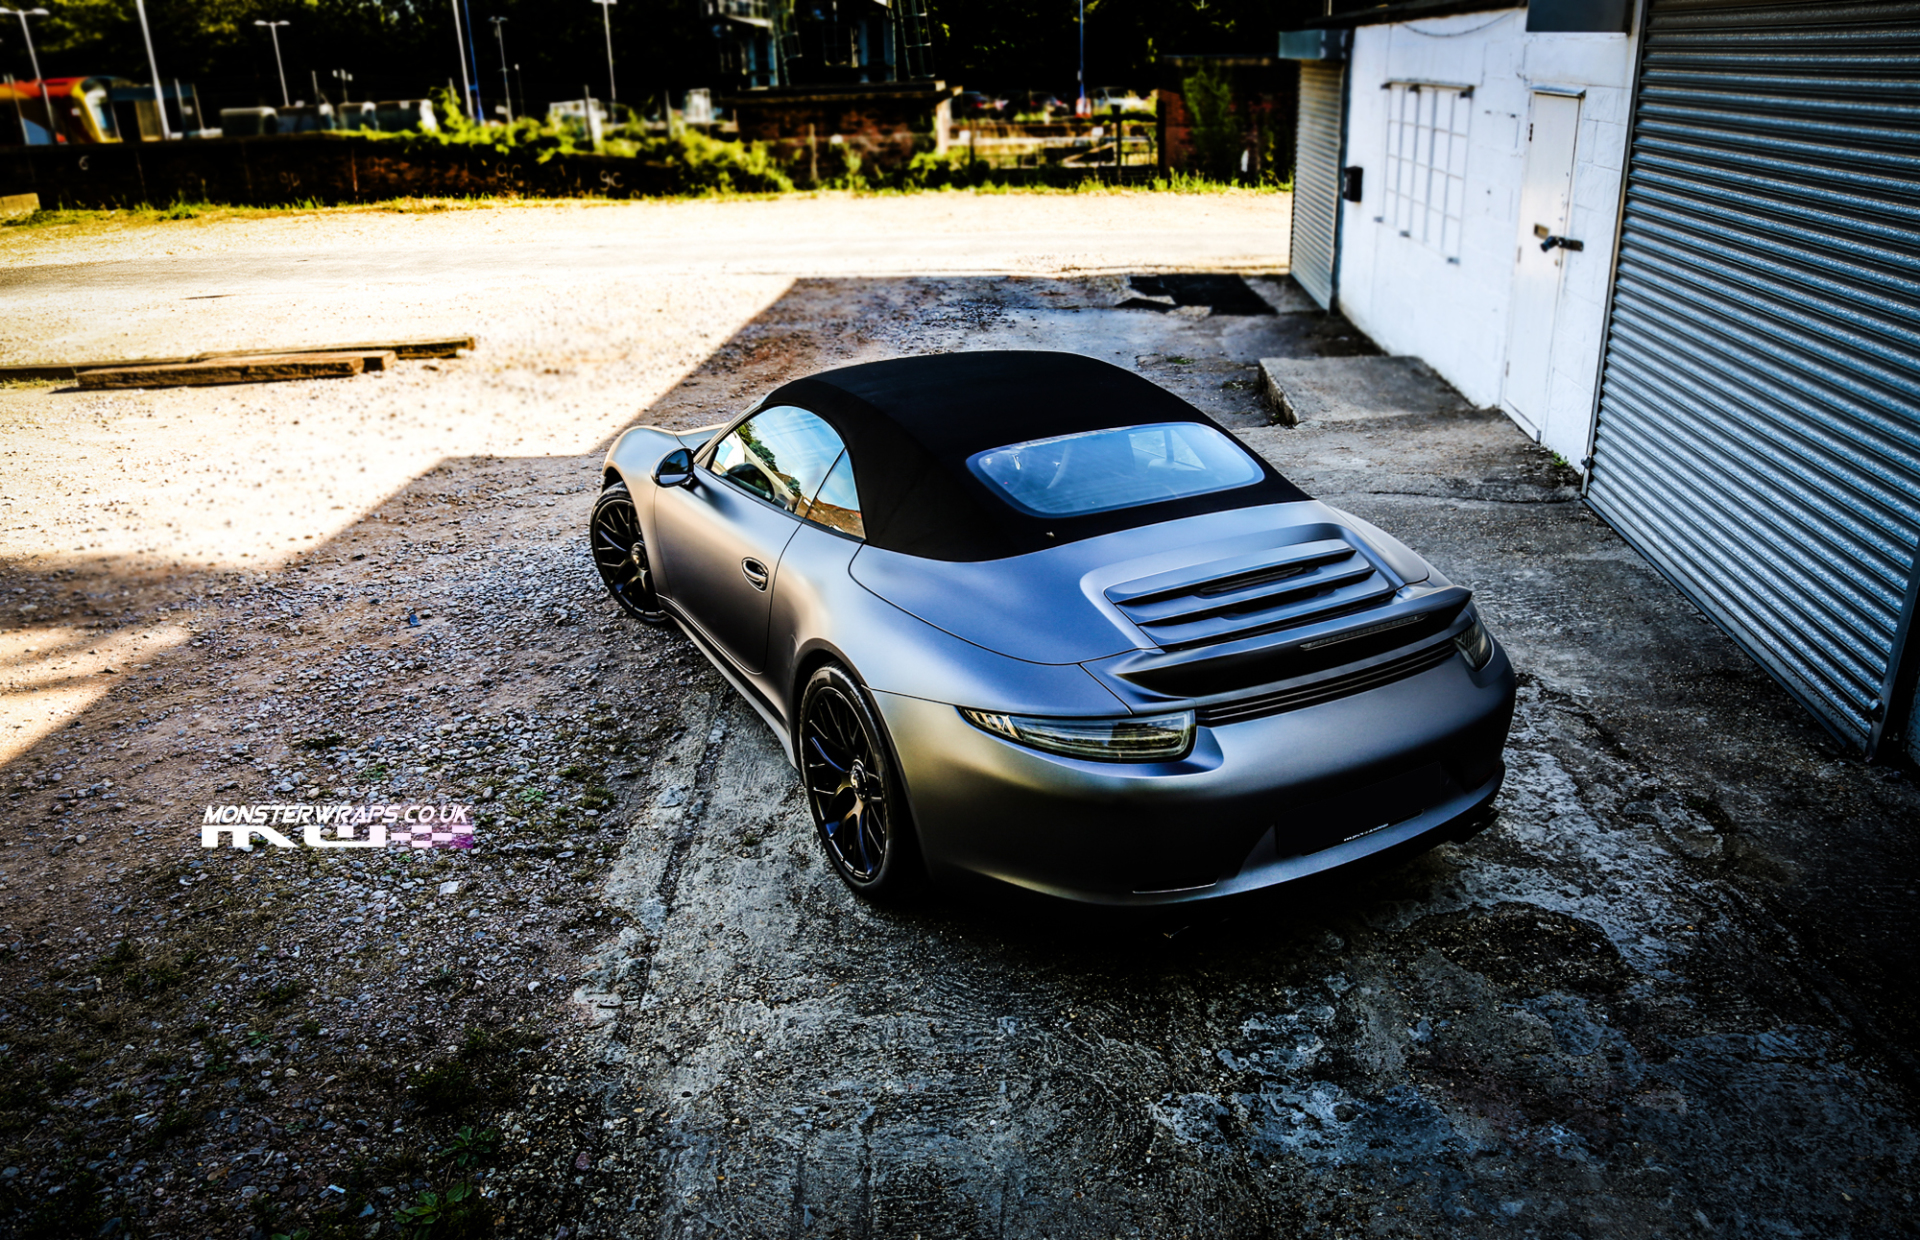 Porsche 911 GTS 3M Satin dark grey wrap